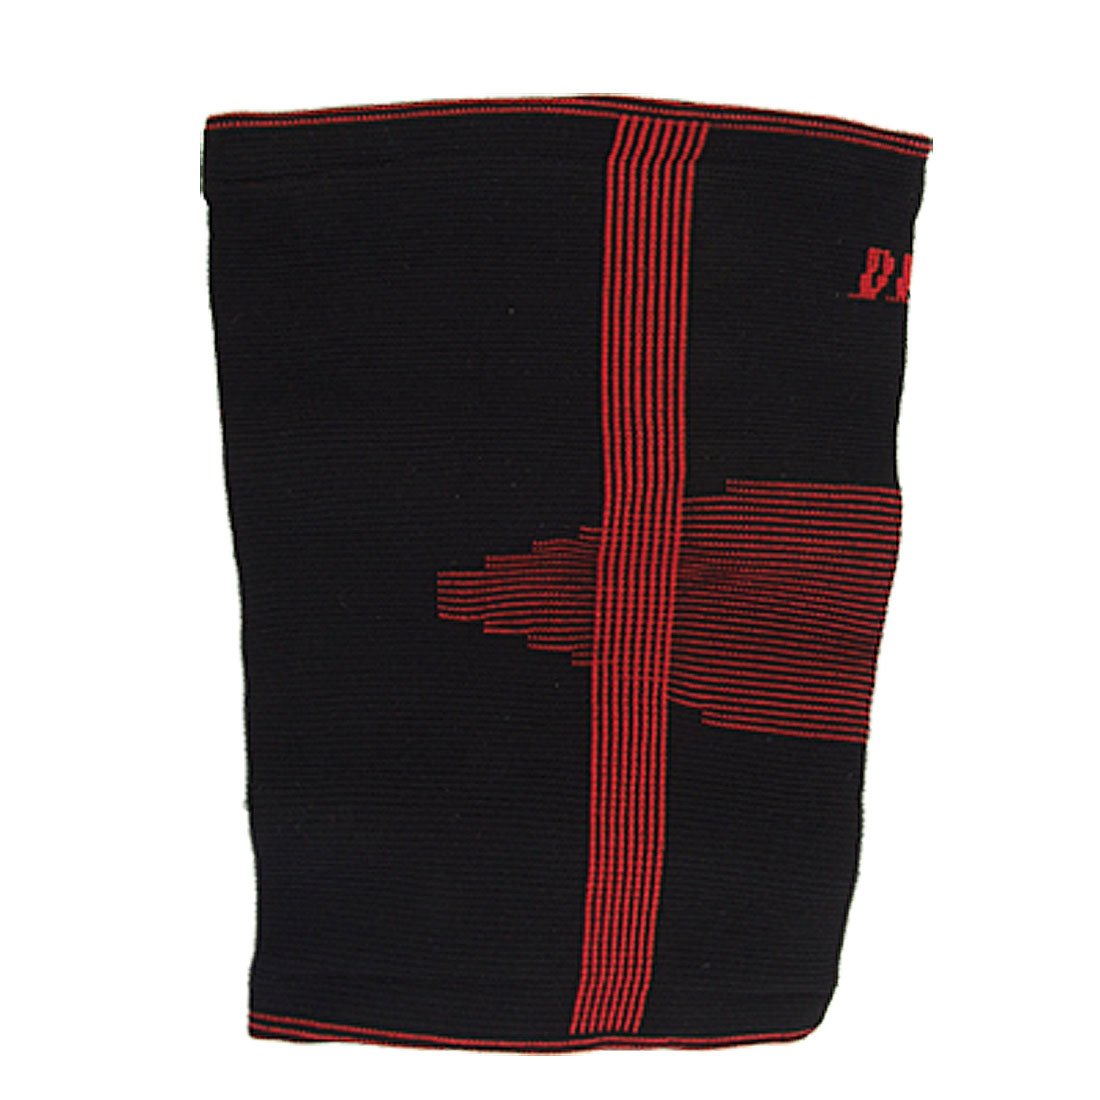 Sporting Pullover Style Elastic Black Red Arm Support Protector